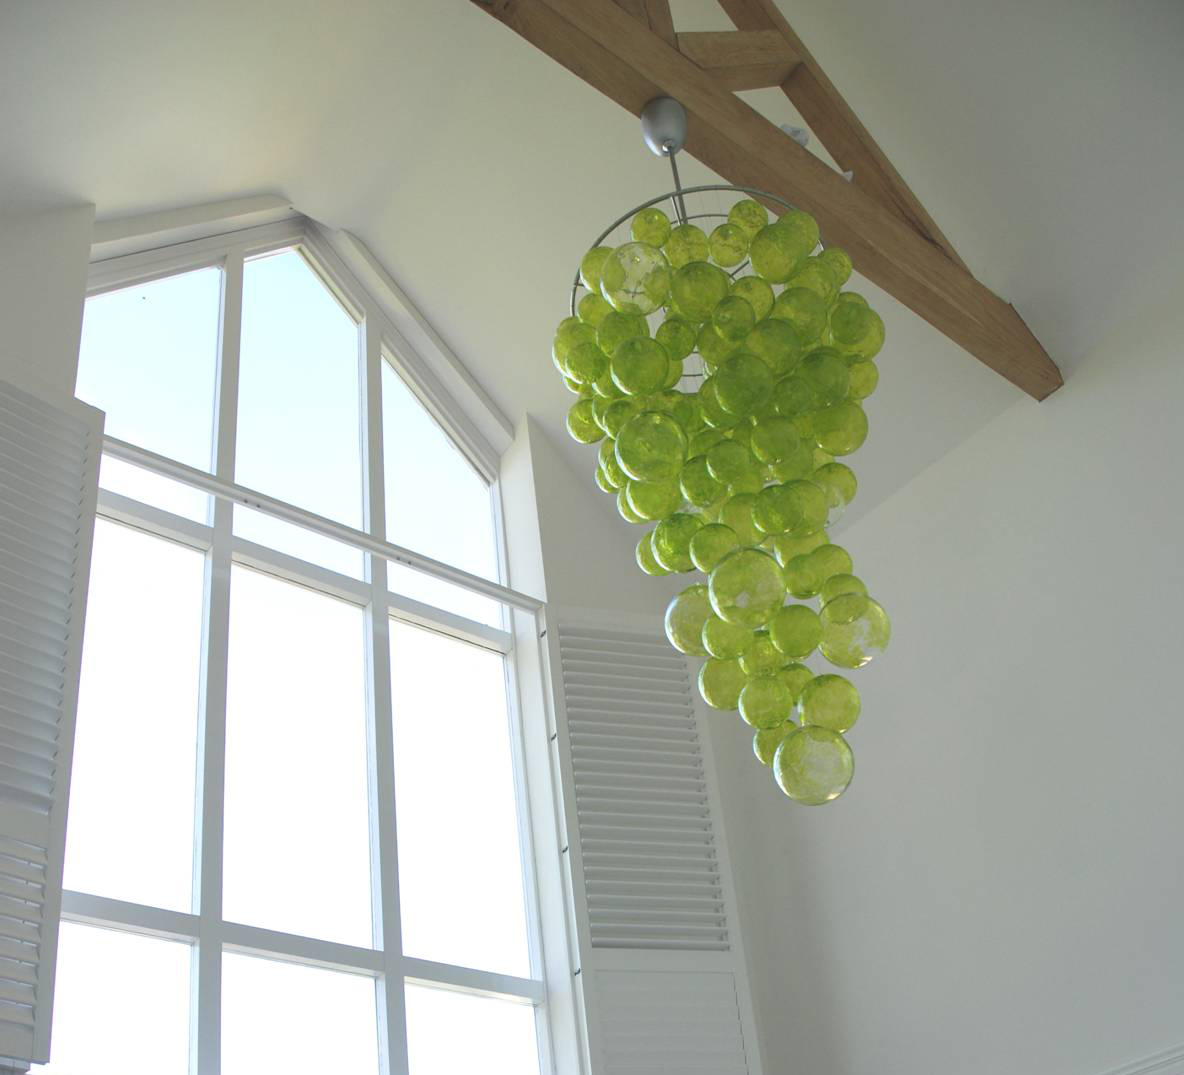 Lightshade made of green balls of glass to give the appearance of a bunch of grapes. Home architecture in Newbury by Inspiration Architecture